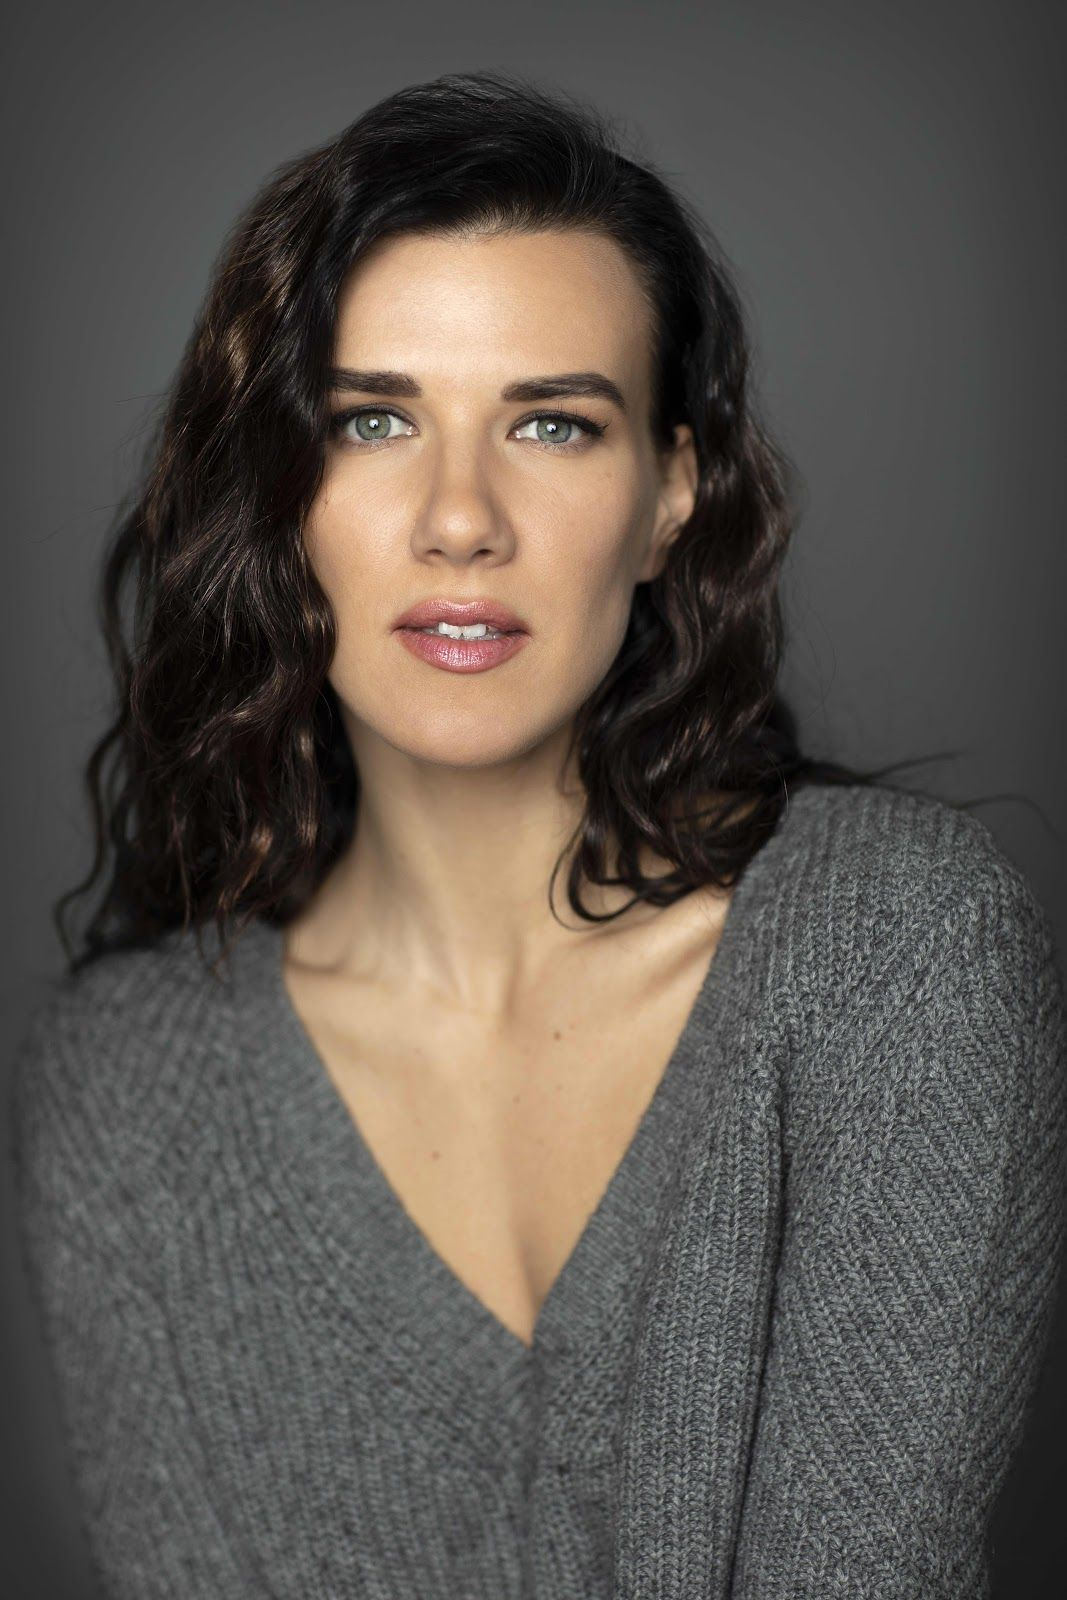 Ukraine Actress Producer Natalie Burn Will Co Star In The Comeback Trail Actresses Tommy Lee Jones Natalie